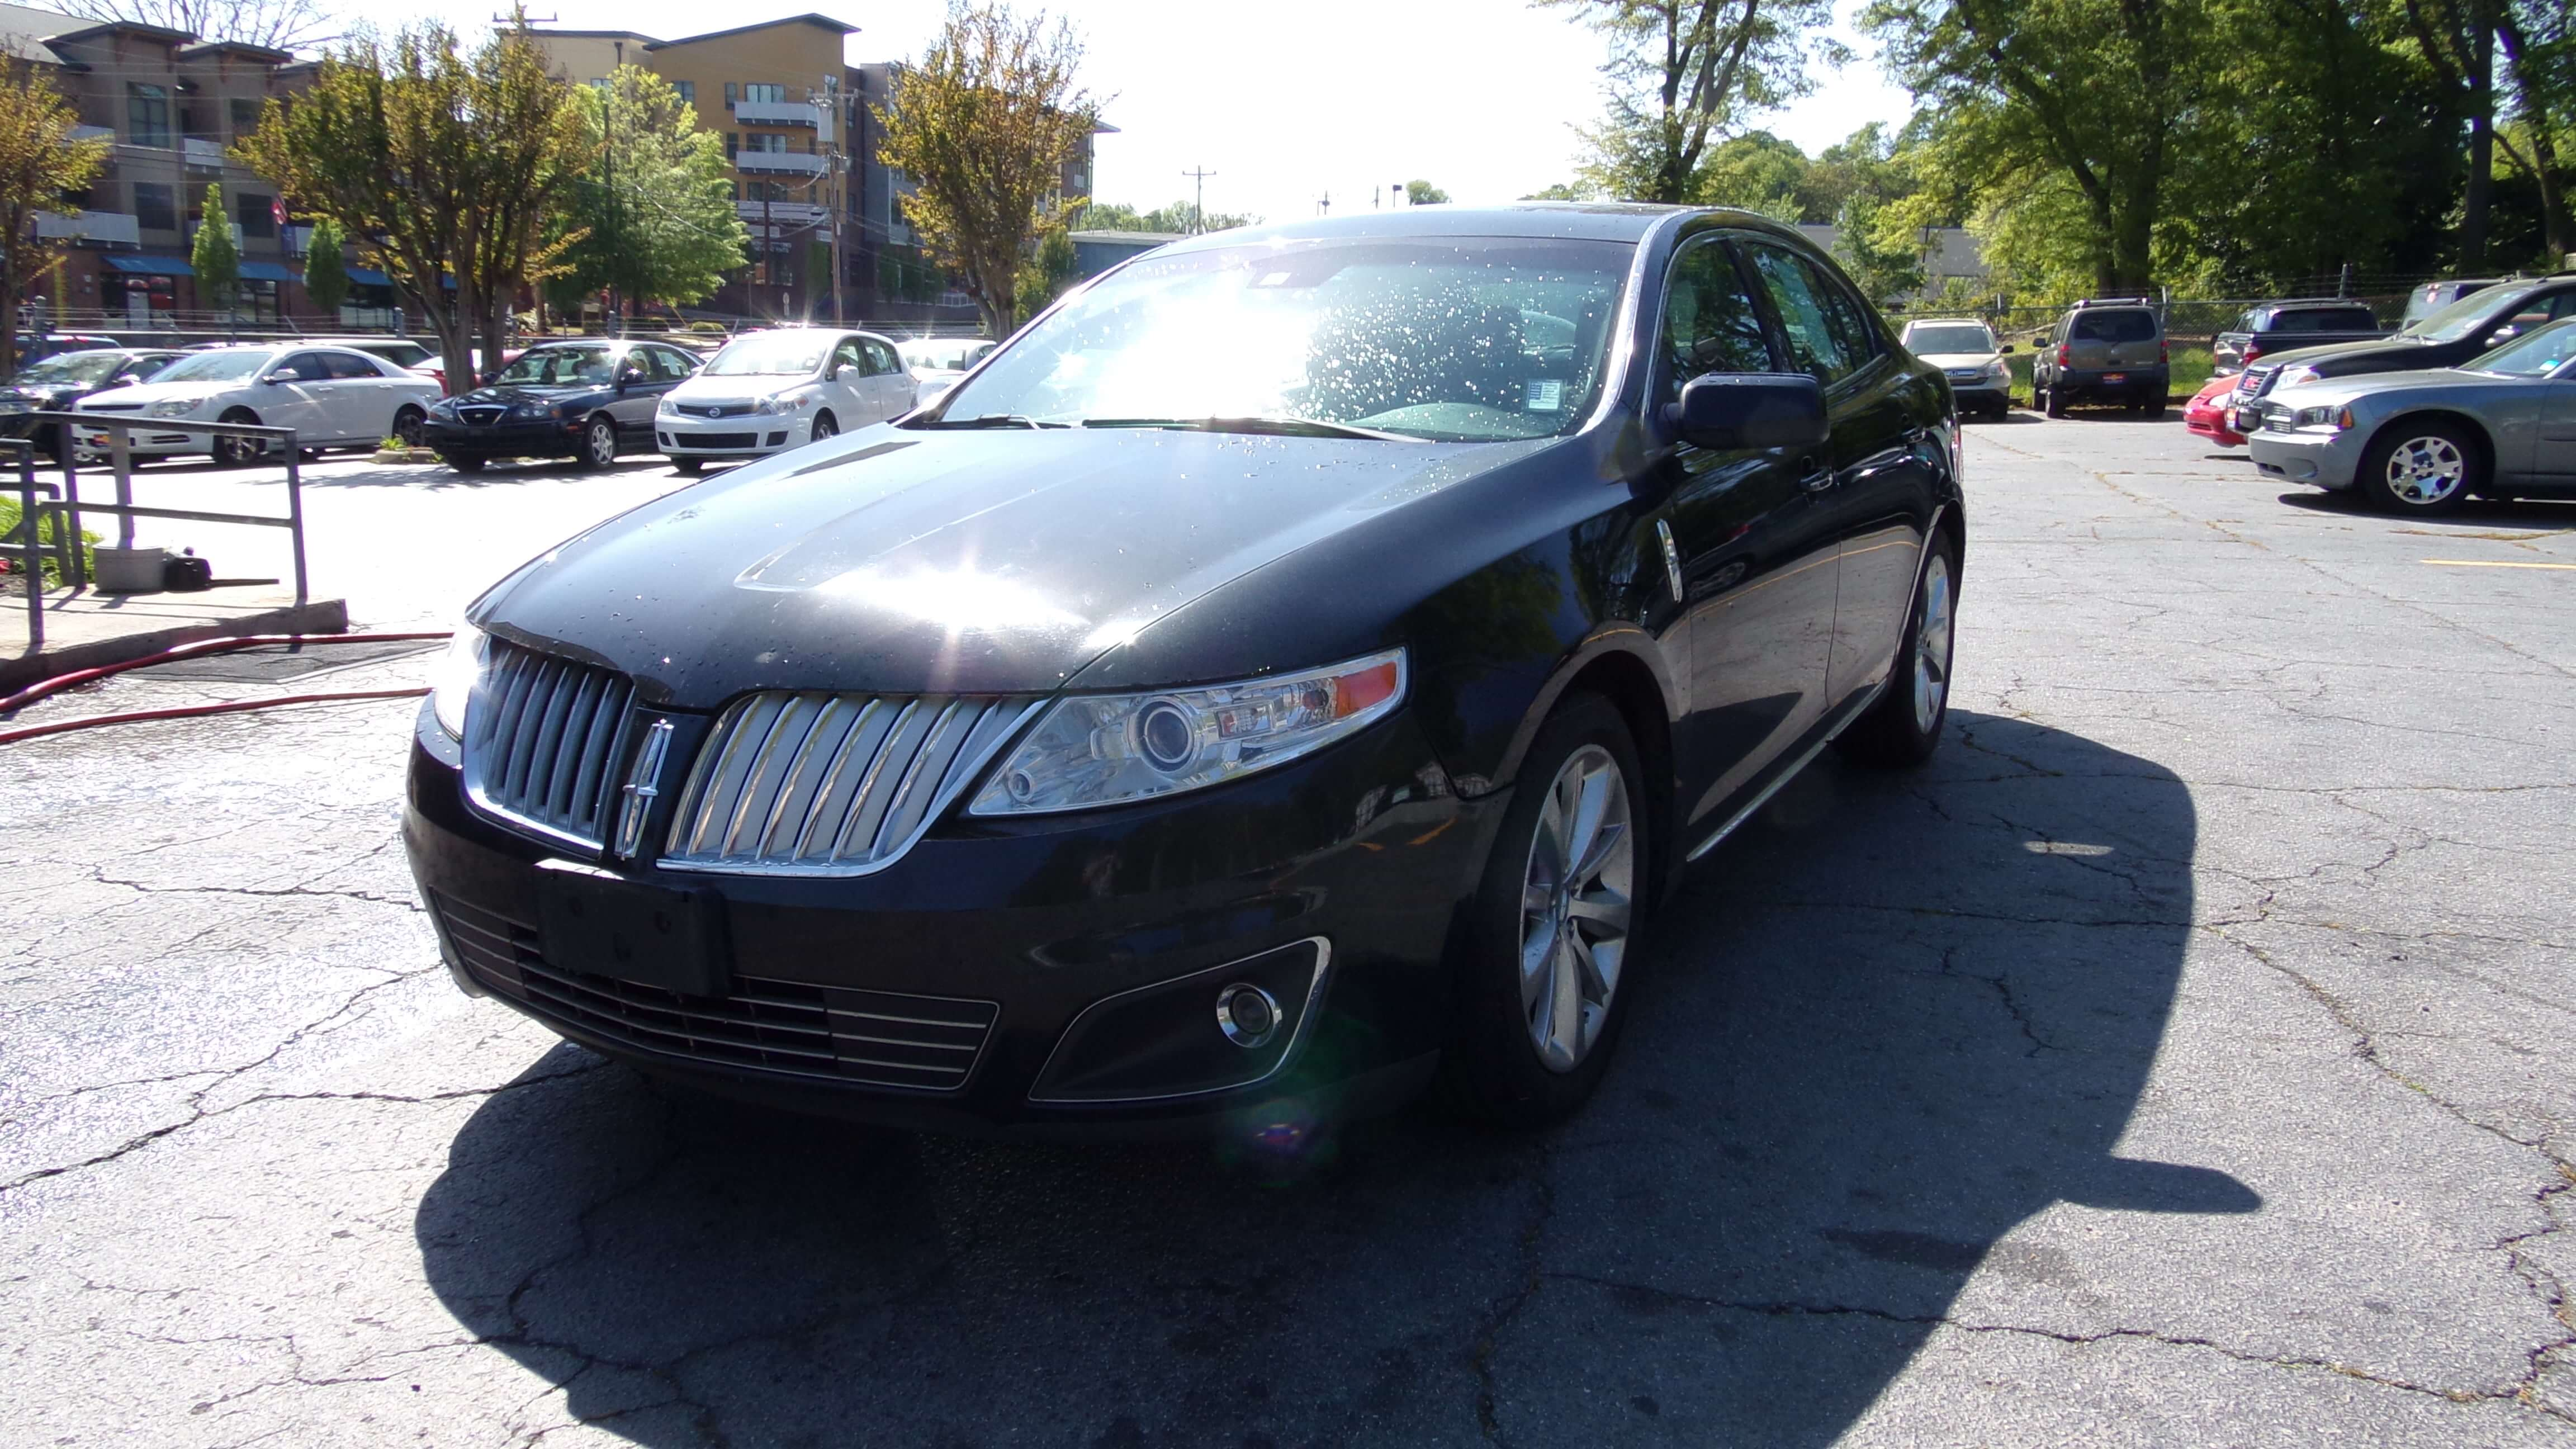 w sale used ultimate htm panoramic near pa mks suv souderton lincoln awd mkx roof for vista